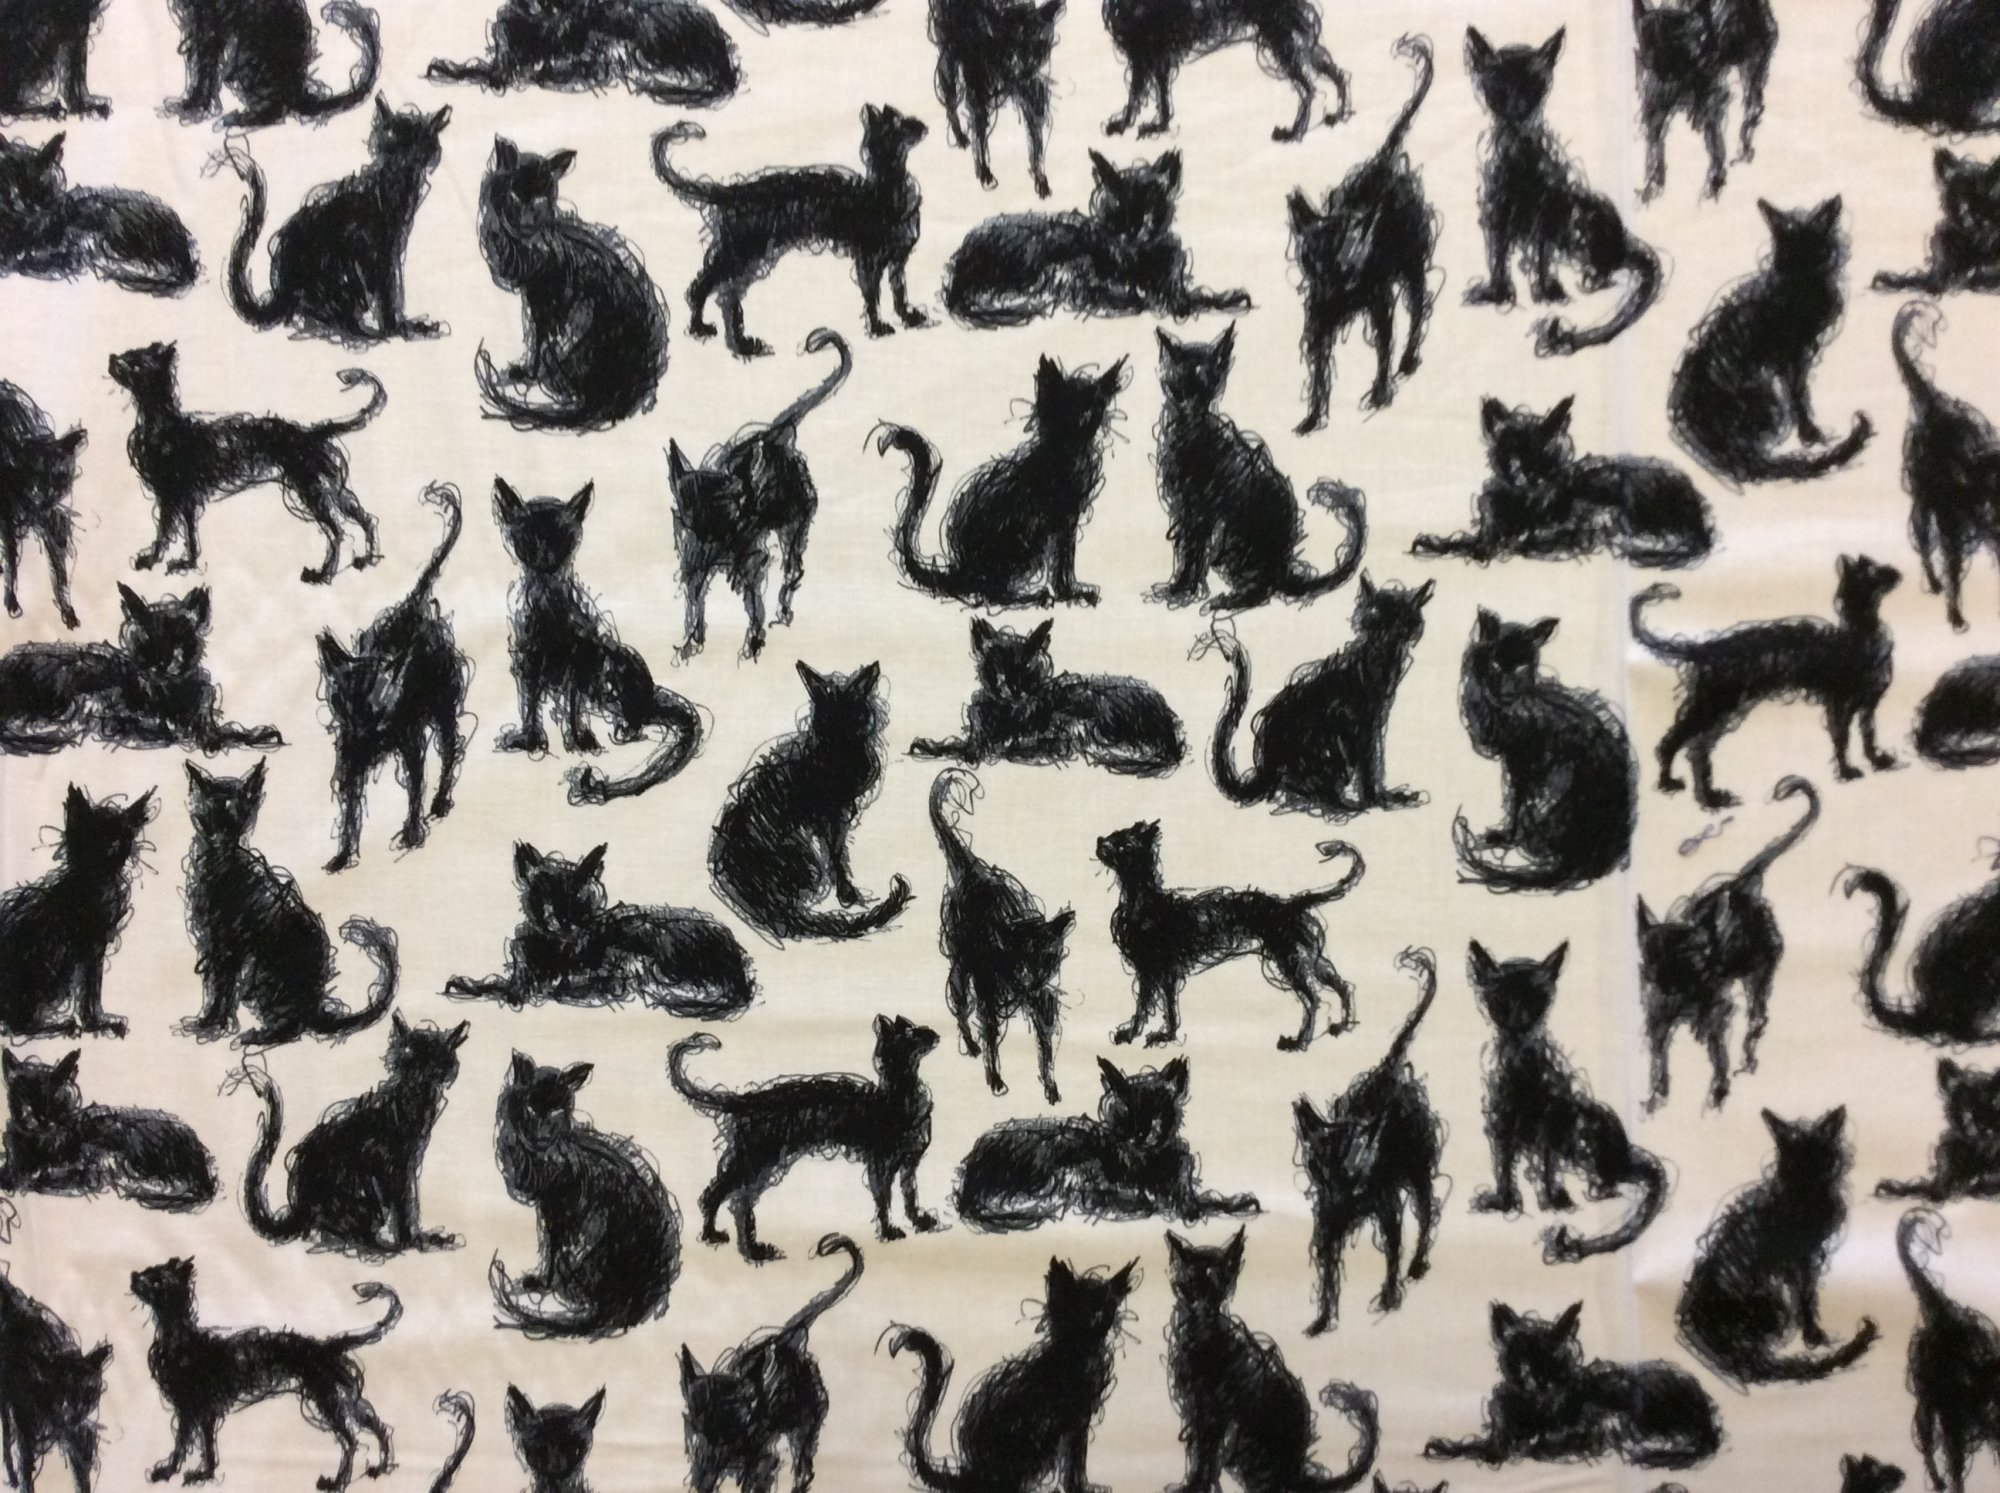 Scribble Black Cat Halloween Kitty Black and White Cotton Quilt Fabric NT85